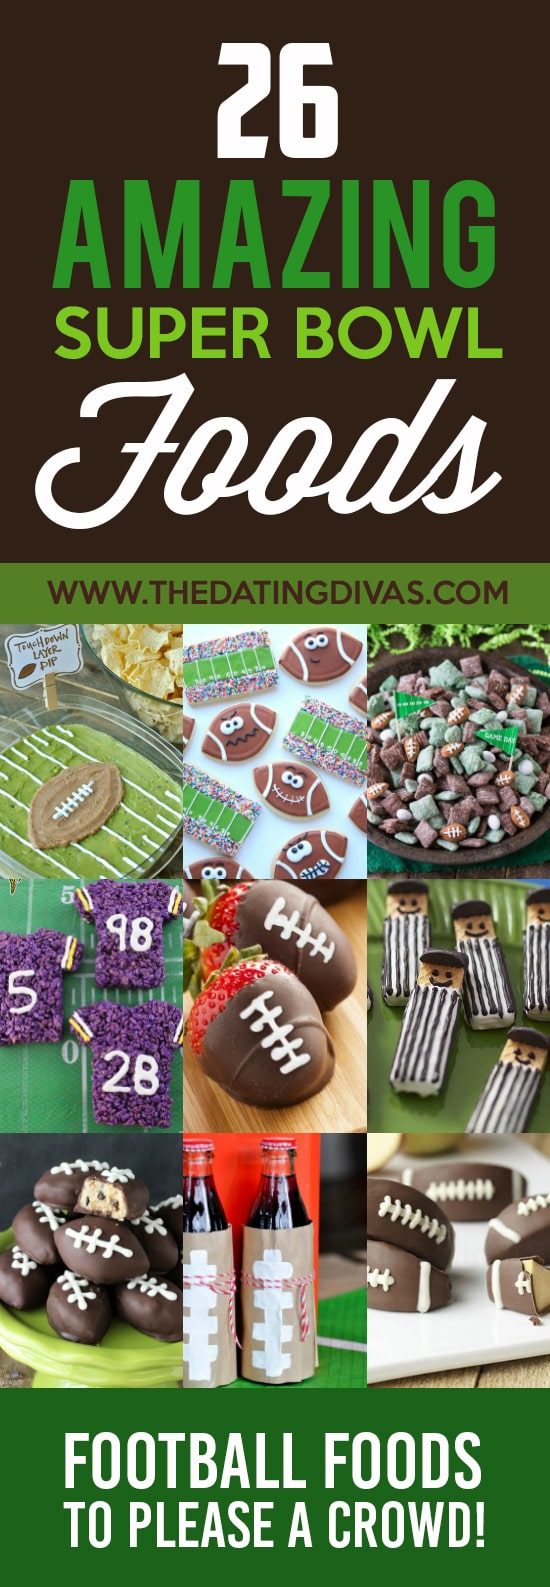 Perfect food ideas for the Super Bowl.